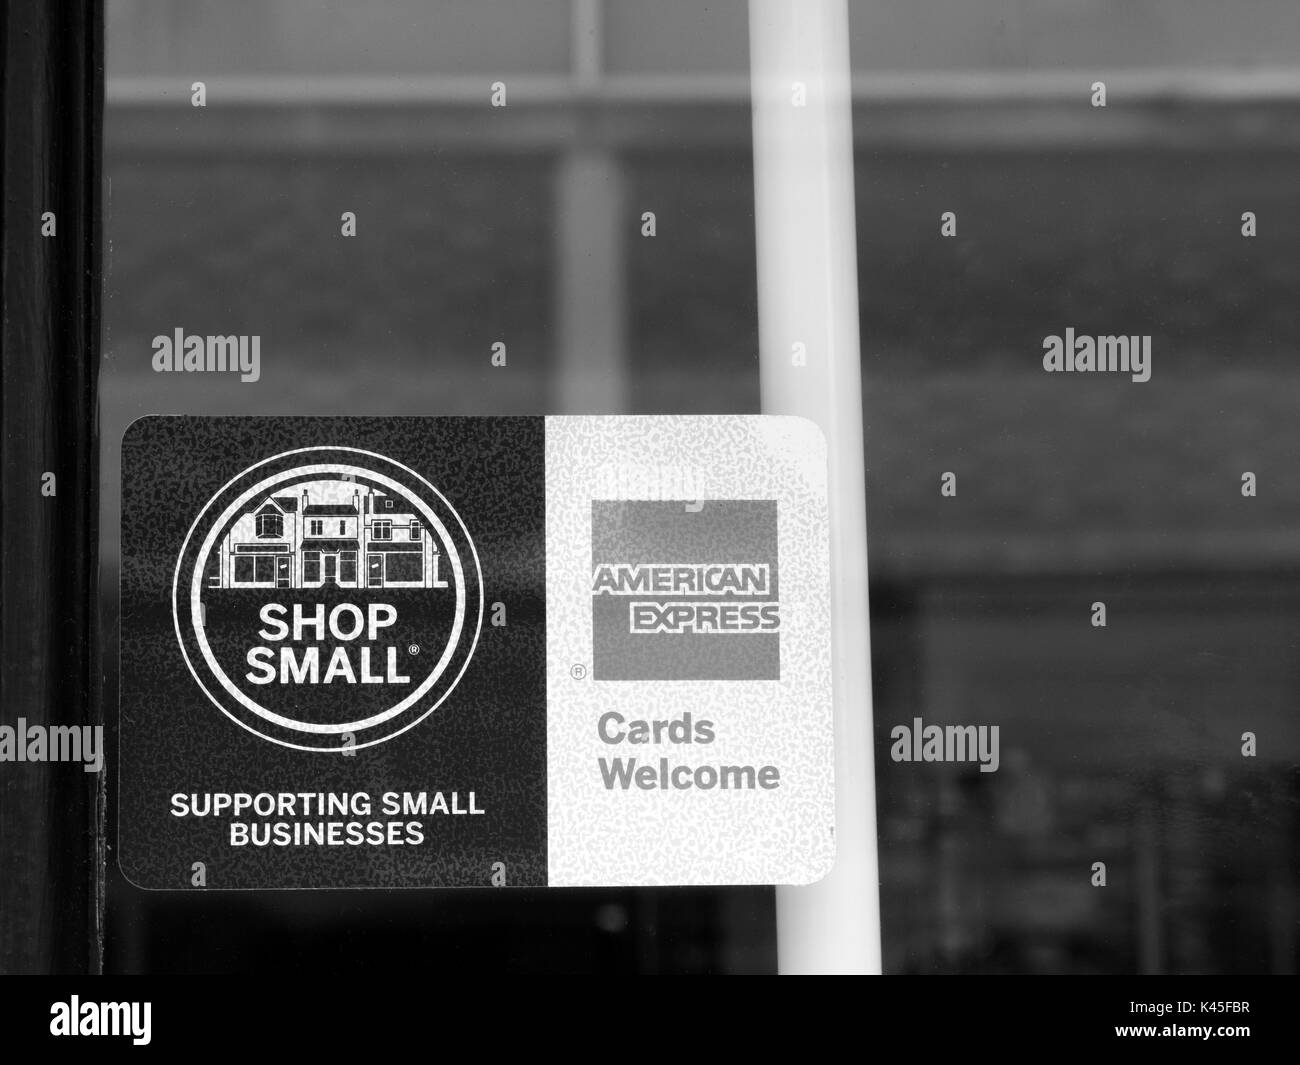 Shop small and american express cards welcome sign in retail shop shop small and american express cards welcome sign in retail shop window colourmoves